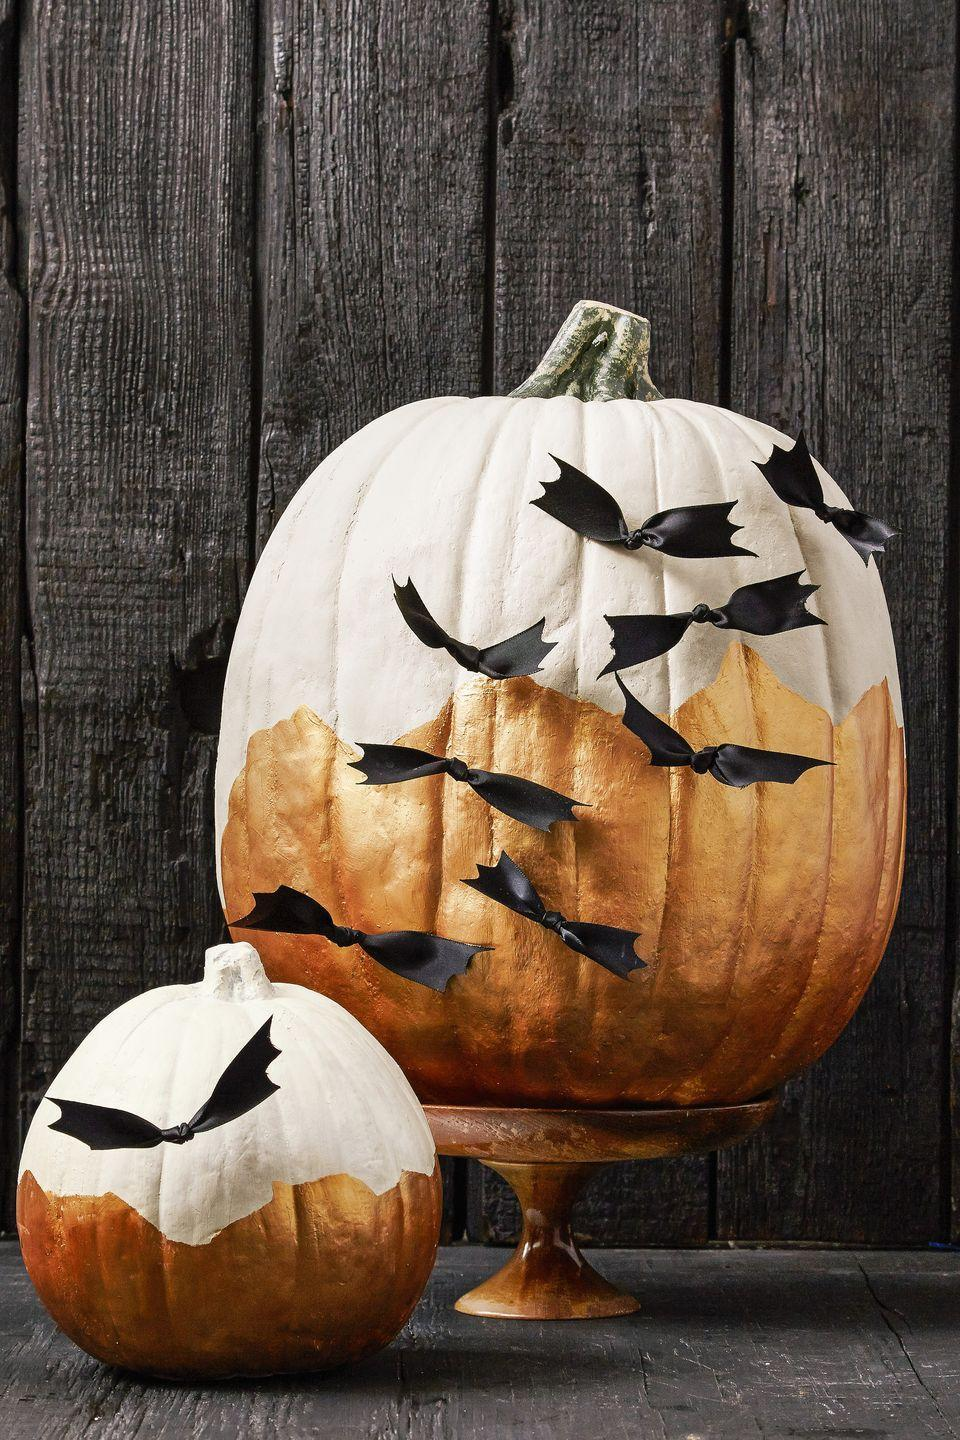 "<p>Here's a batty idea: After painting your pumpkin, tie a loose knot in the middle of a four-inch piece of black satin ribbon, then cut the ends to resemble wings. Once you have a cauldron of bats, attach them to a painted pumpkin with sewing pins. </p><p><a class=""link rapid-noclick-resp"" href=""https://www.amazon.com/Black-Double-Face-Satin-Ribbon/dp/B00CIXSW0M?tag=syn-yahoo-20&ascsubtag=%5Bartid%7C10055.g.2592%5Bsrc%7Cyahoo-us"" rel=""nofollow noopener"" target=""_blank"" data-ylk=""slk:SHOP RIBBON"">SHOP RIBBON</a></p>"